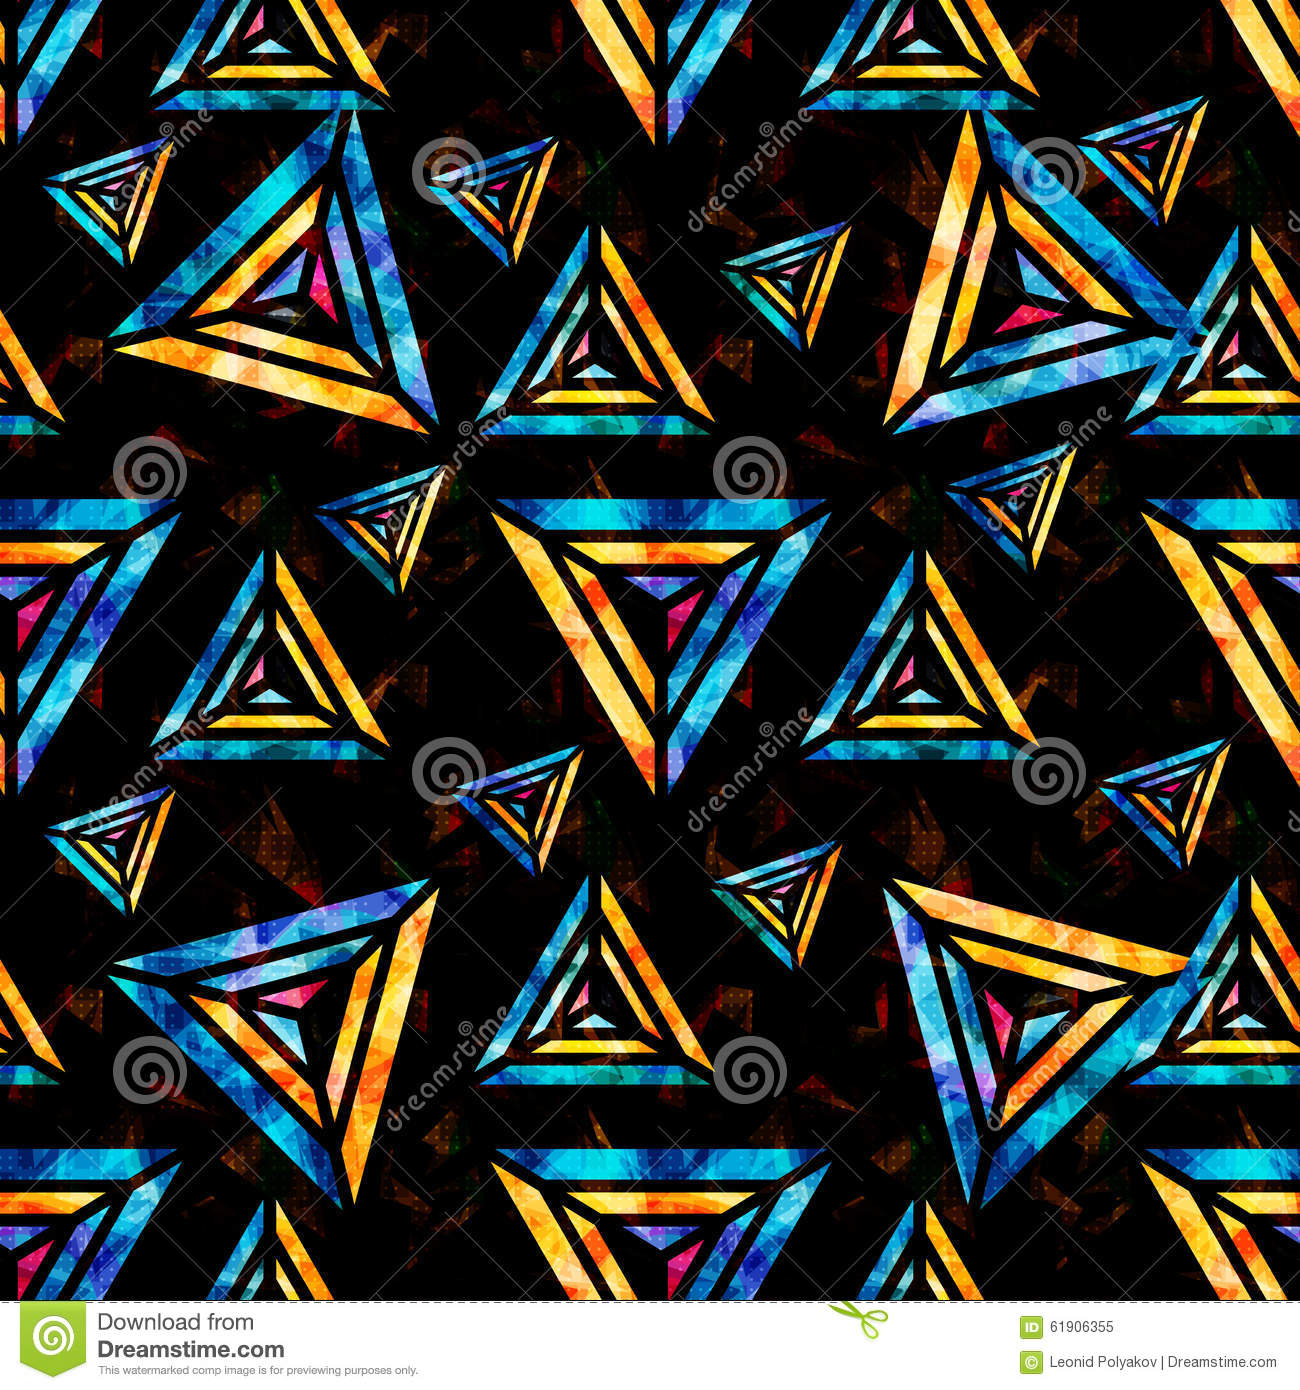 Bright Wallpapers For Iphone 6 Bright Psychedelic Polygons On A Black Background Abstract